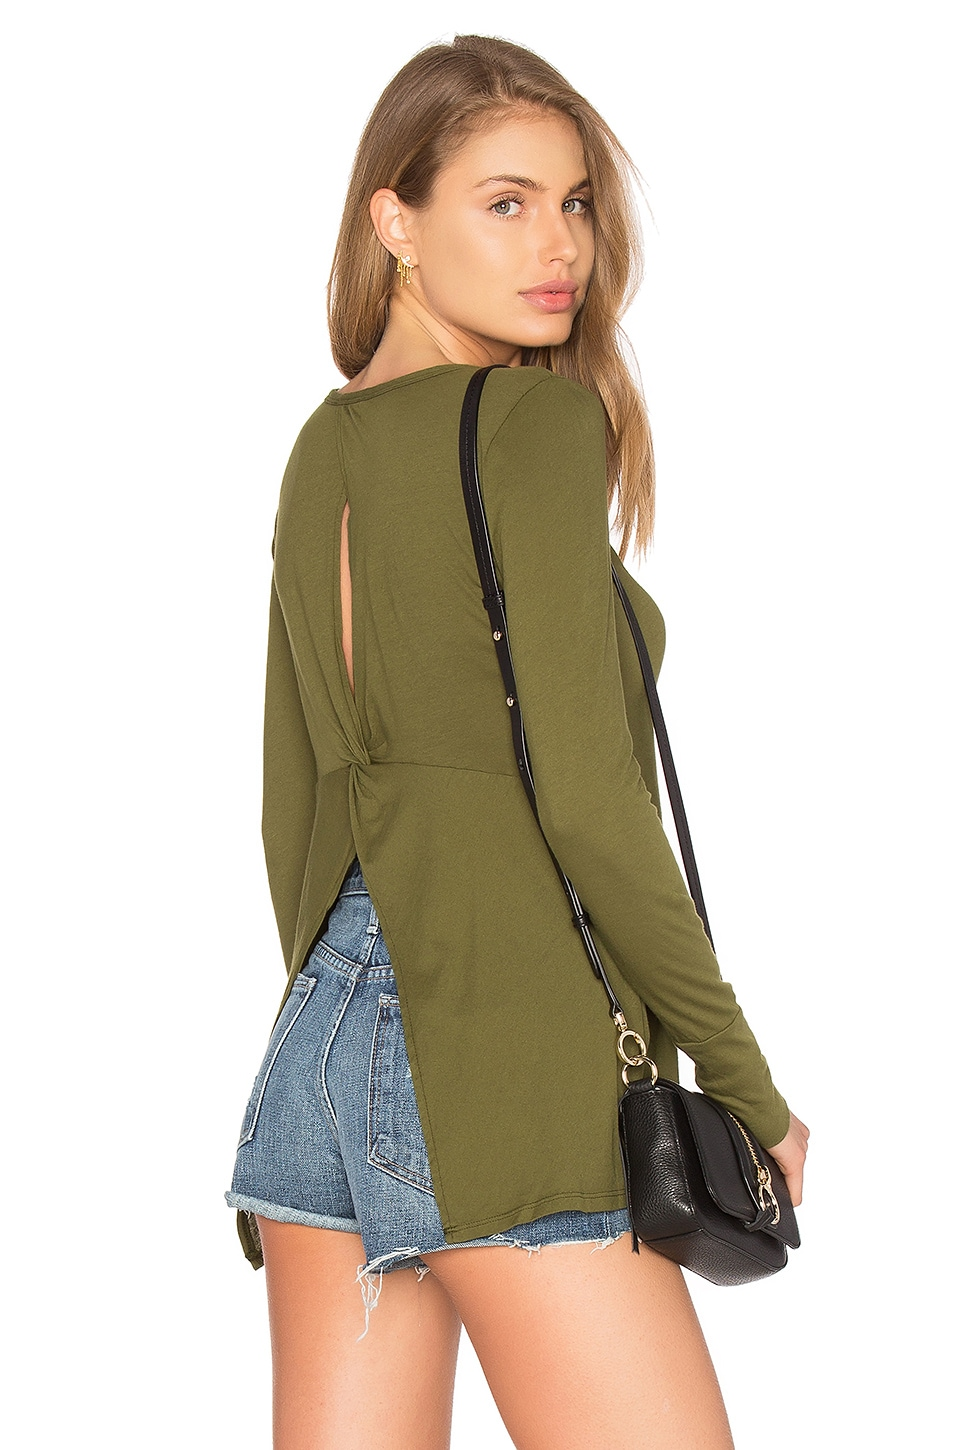 Light Weight Jersey Open Back Long Sleeve Top by Bobi